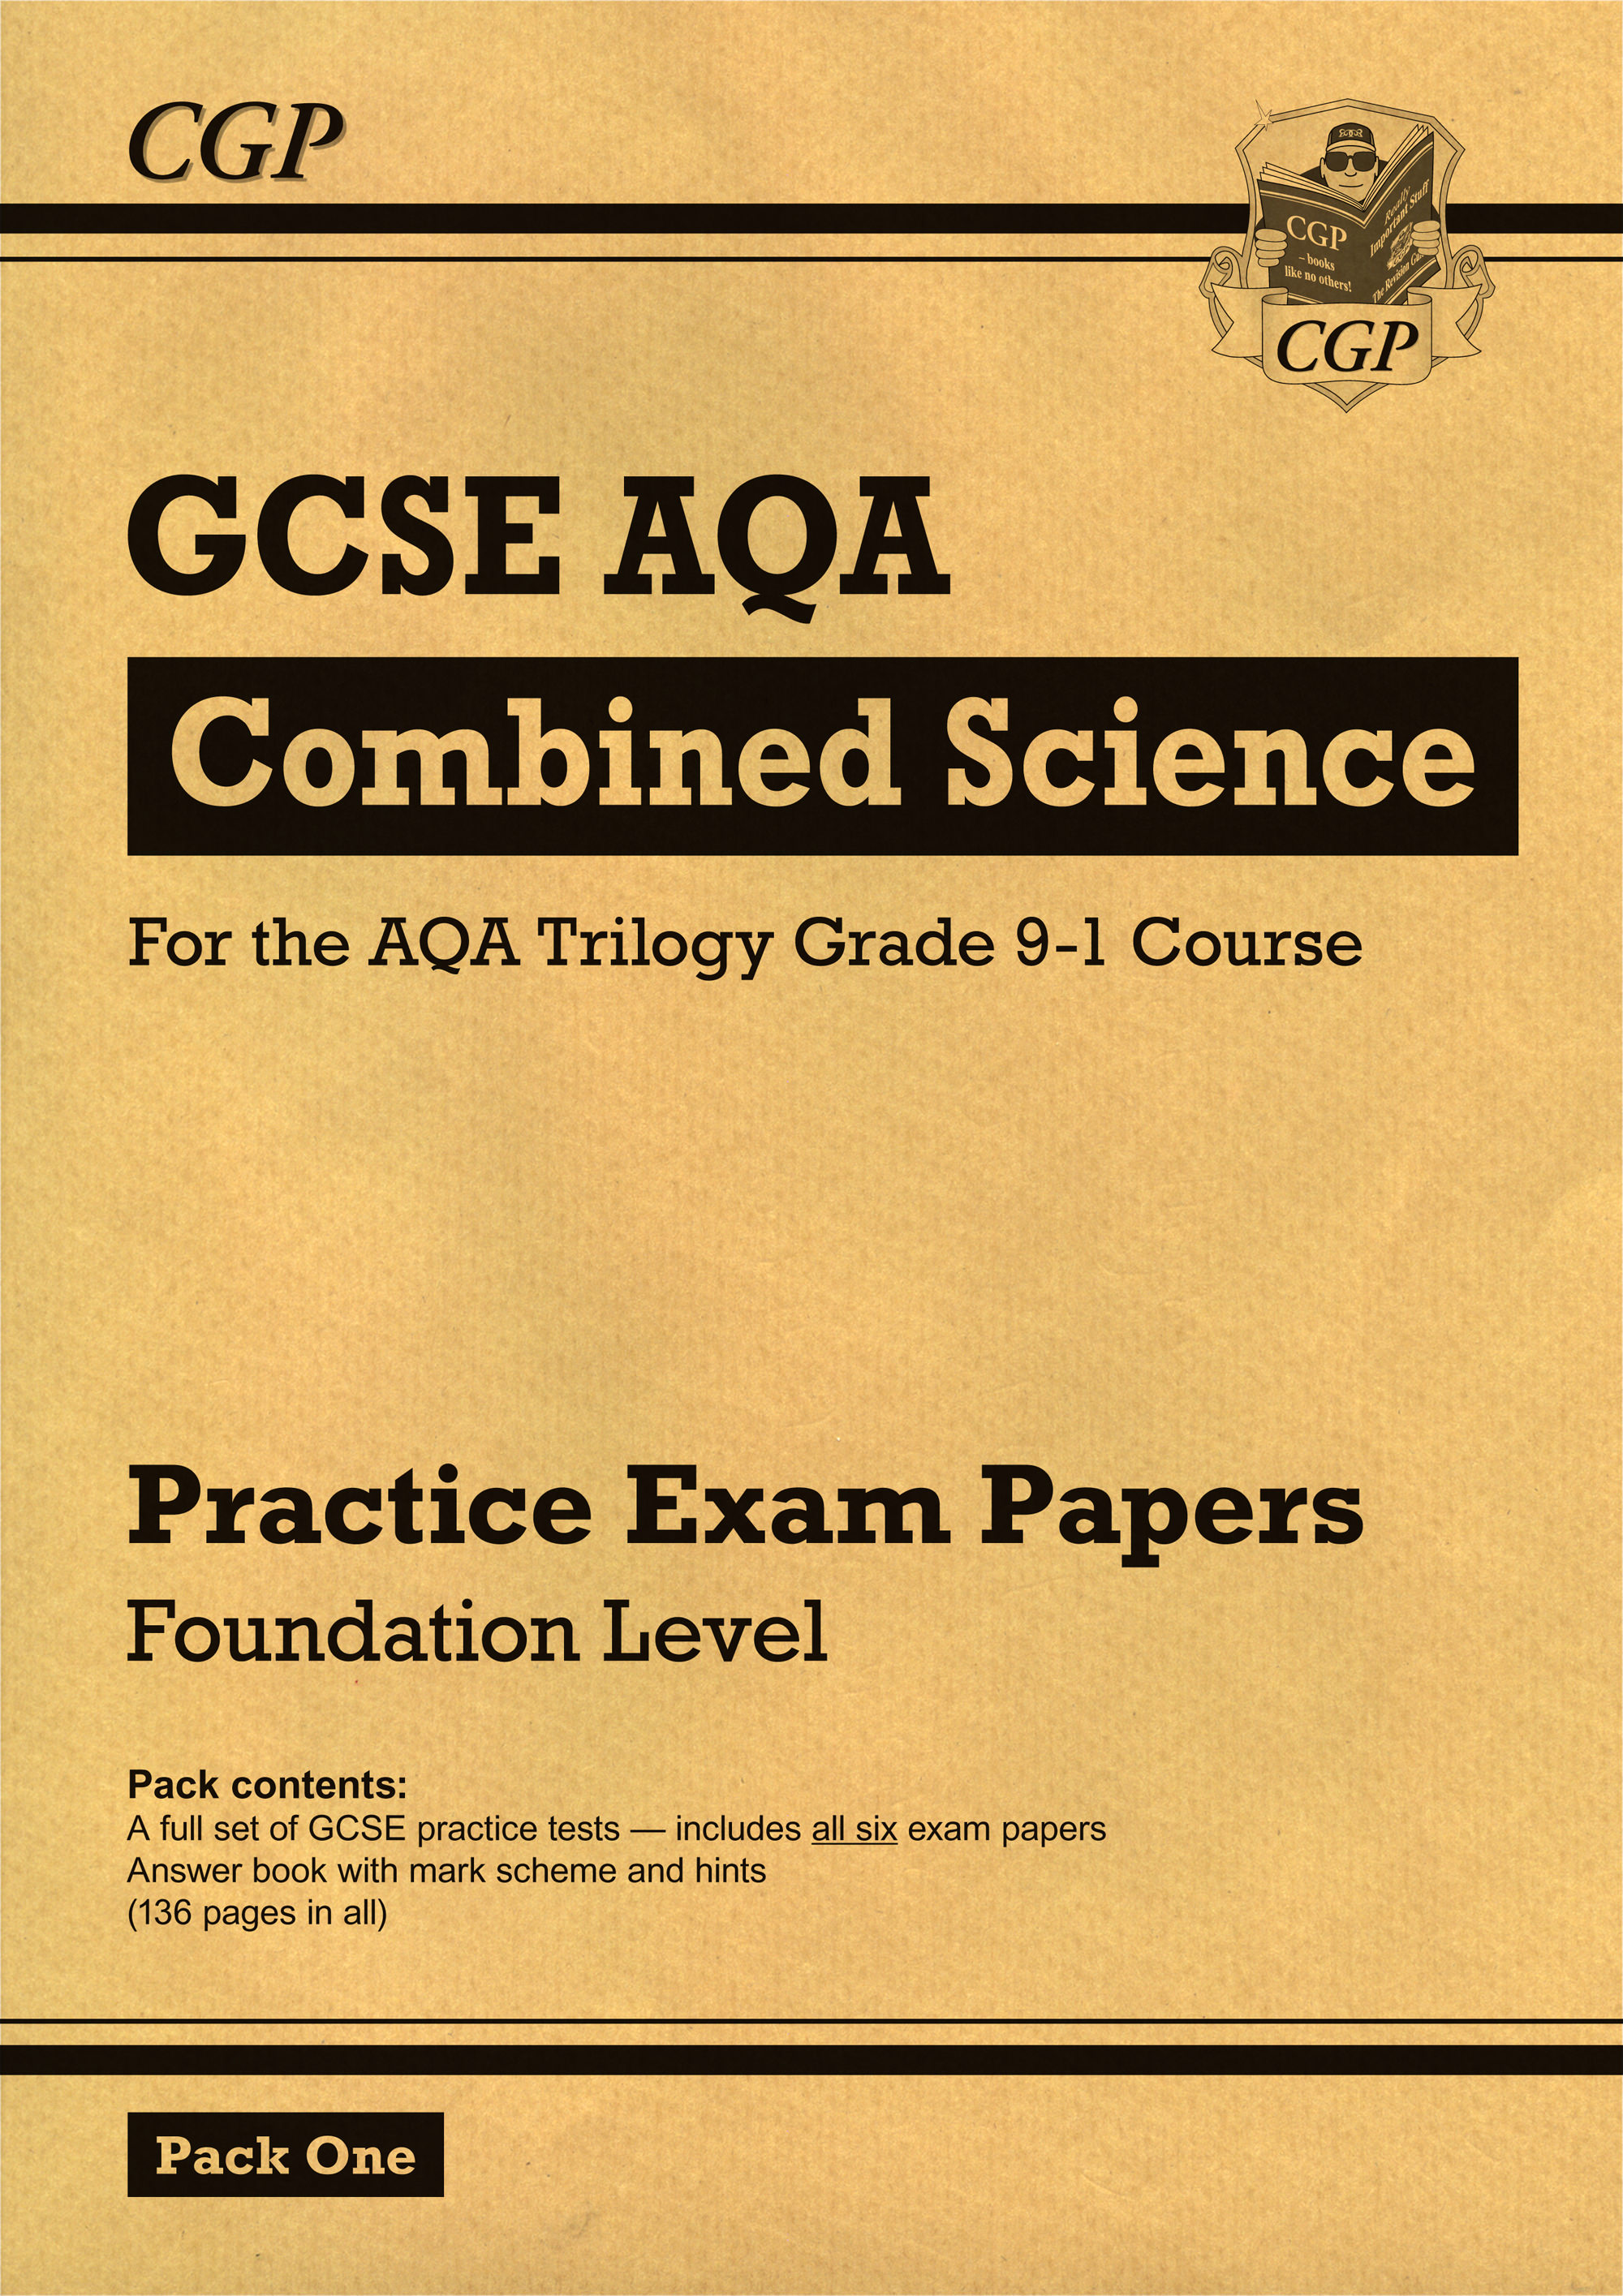 SAFP45 - New Grade 9-1 GCSE Combined Science AQA Practice Papers: Foundation Pack 1